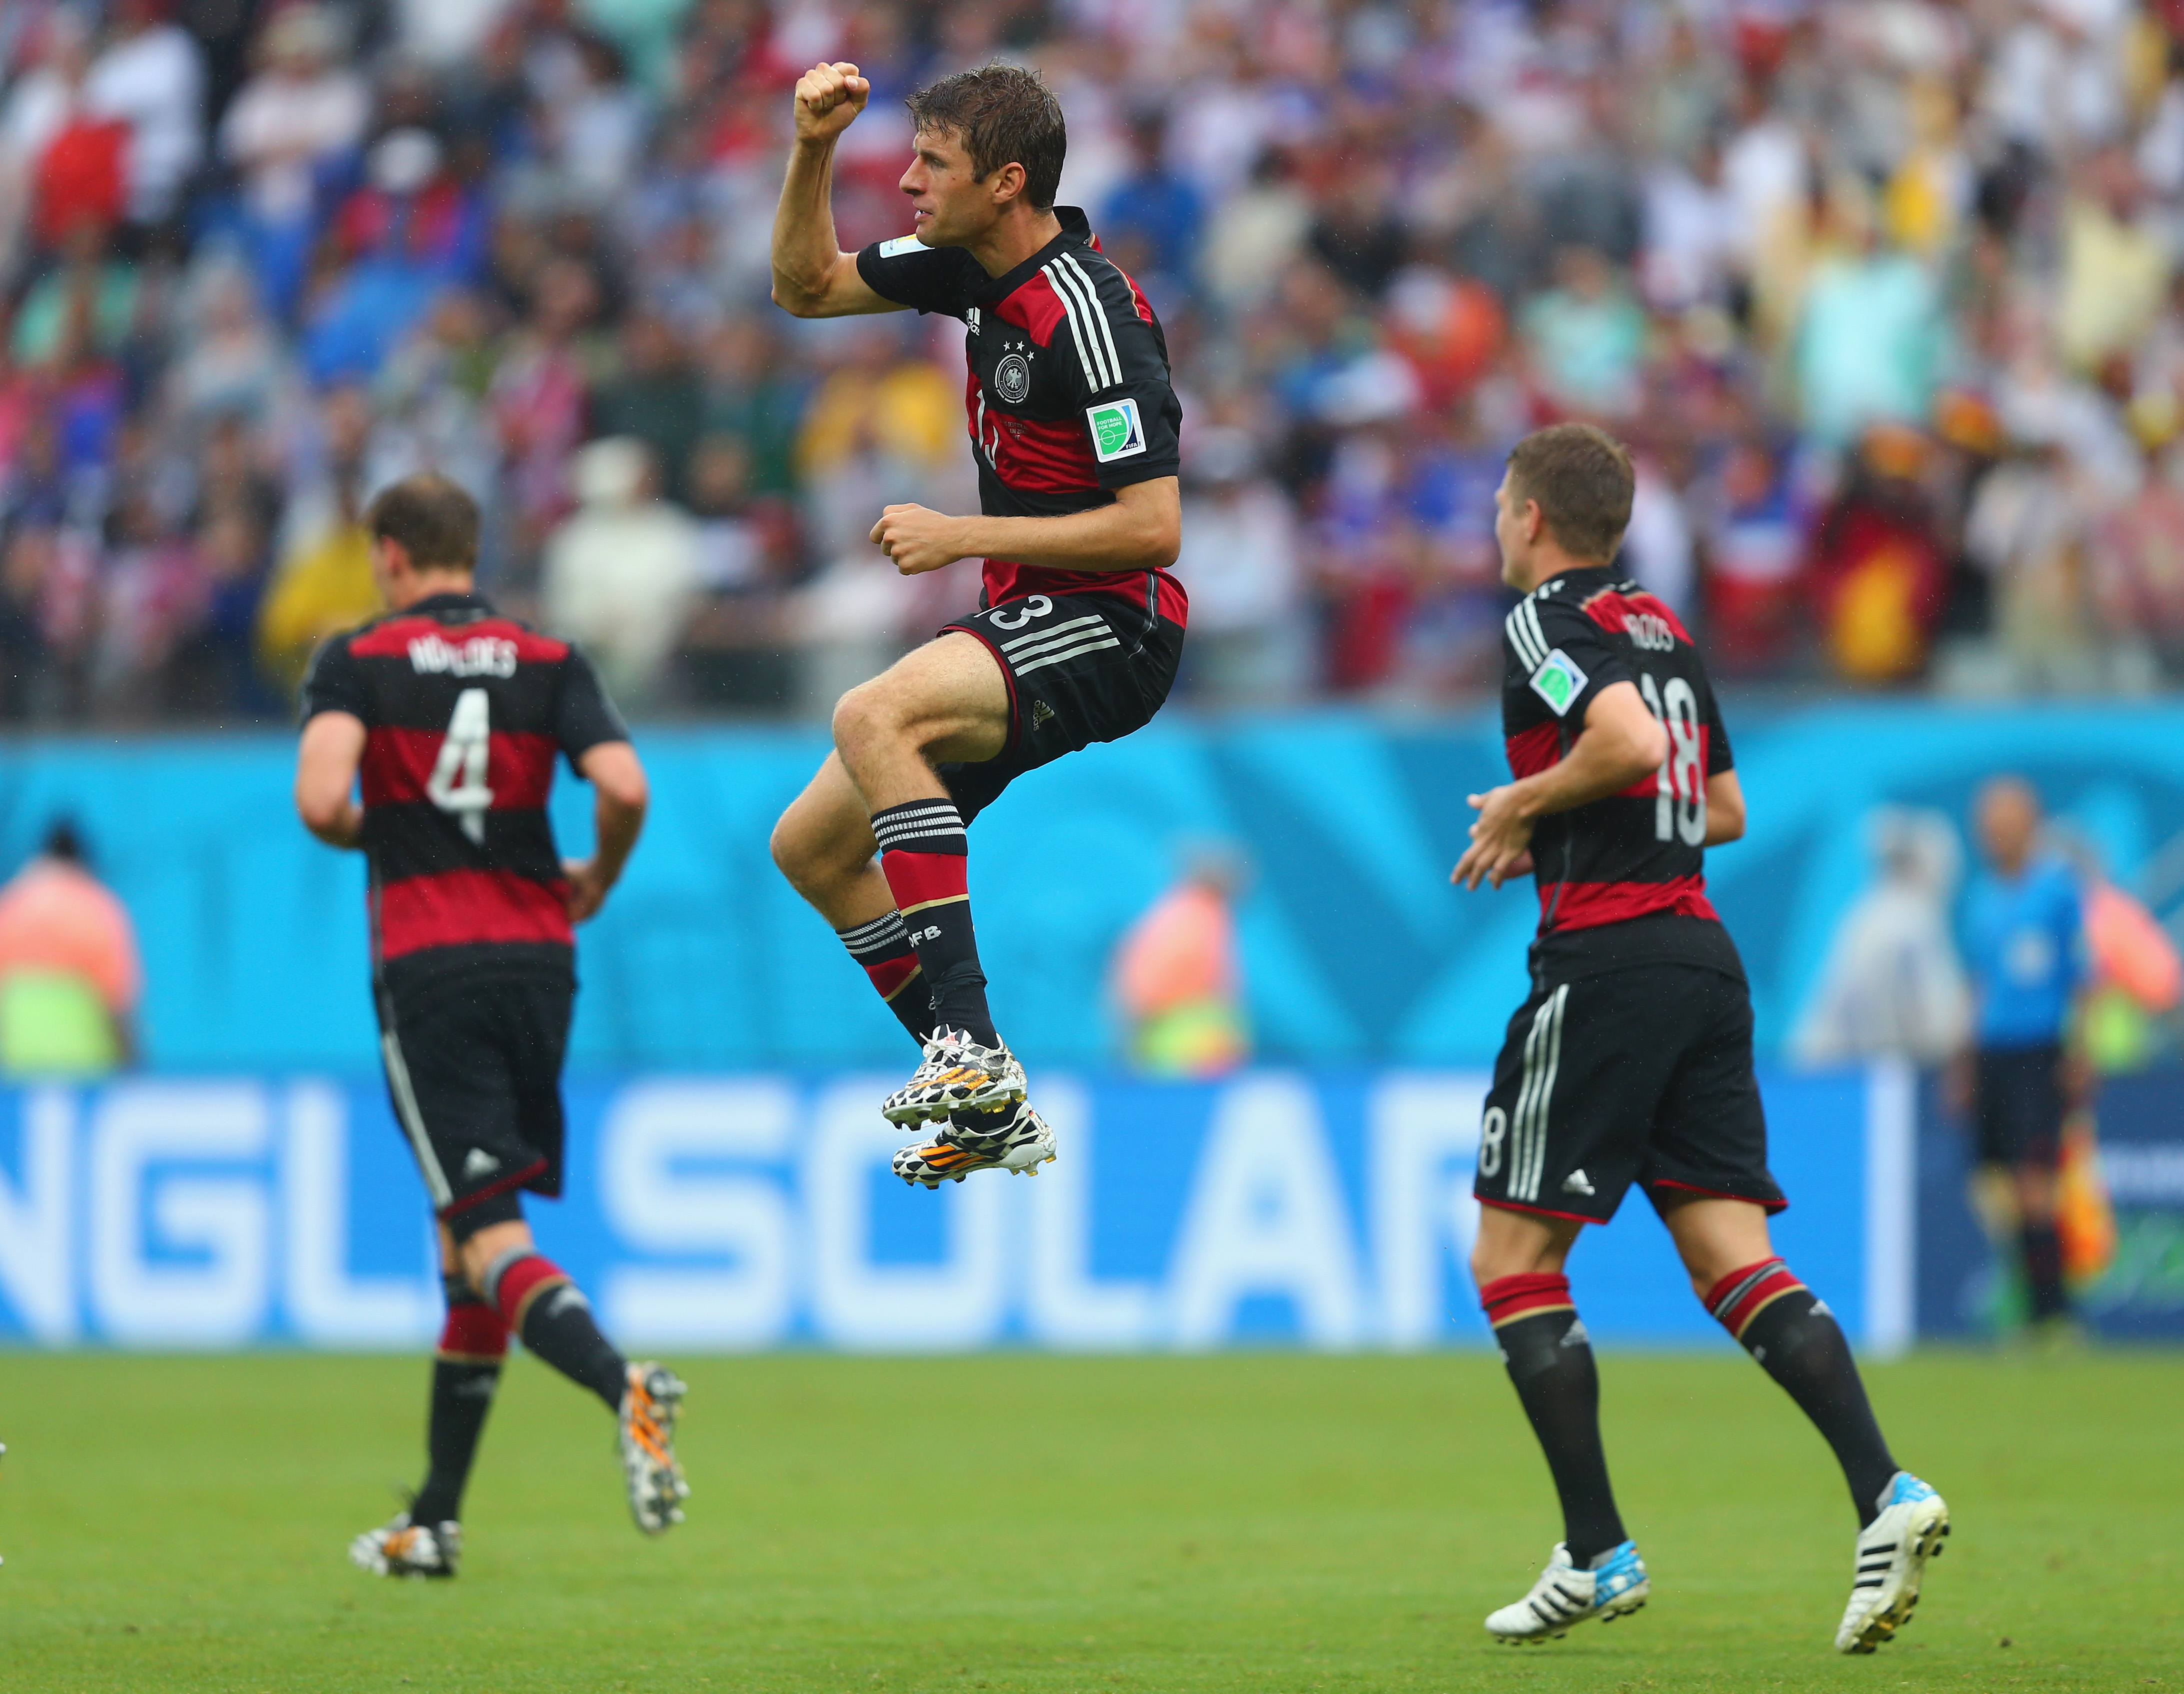 RECIFE, BRAZIL - JUNE 26:  Thomas Mueller of Germany (C) celebrates scoring his team's first goal during the 2014 FIFA World